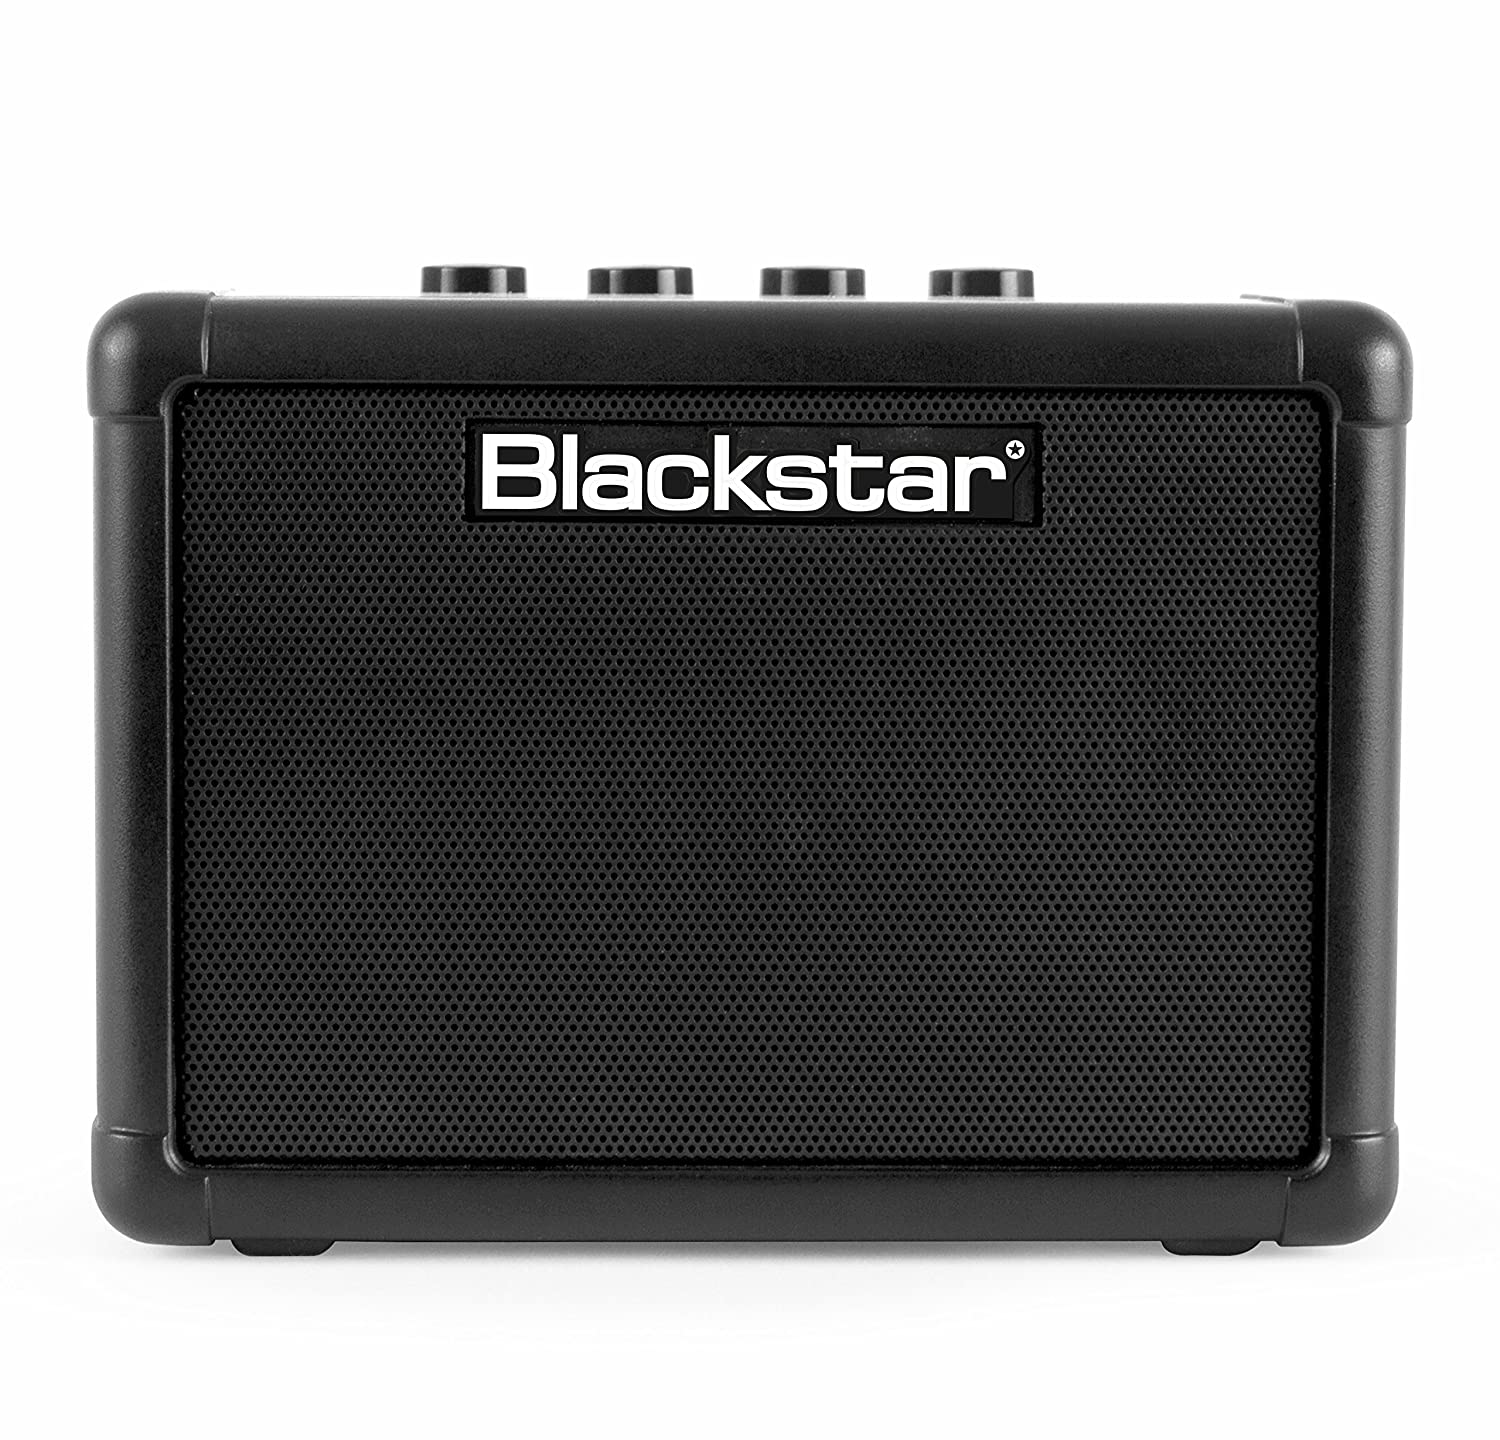 Blackstar FLY3 Guitar Amplifier Black Friday Deal 2019